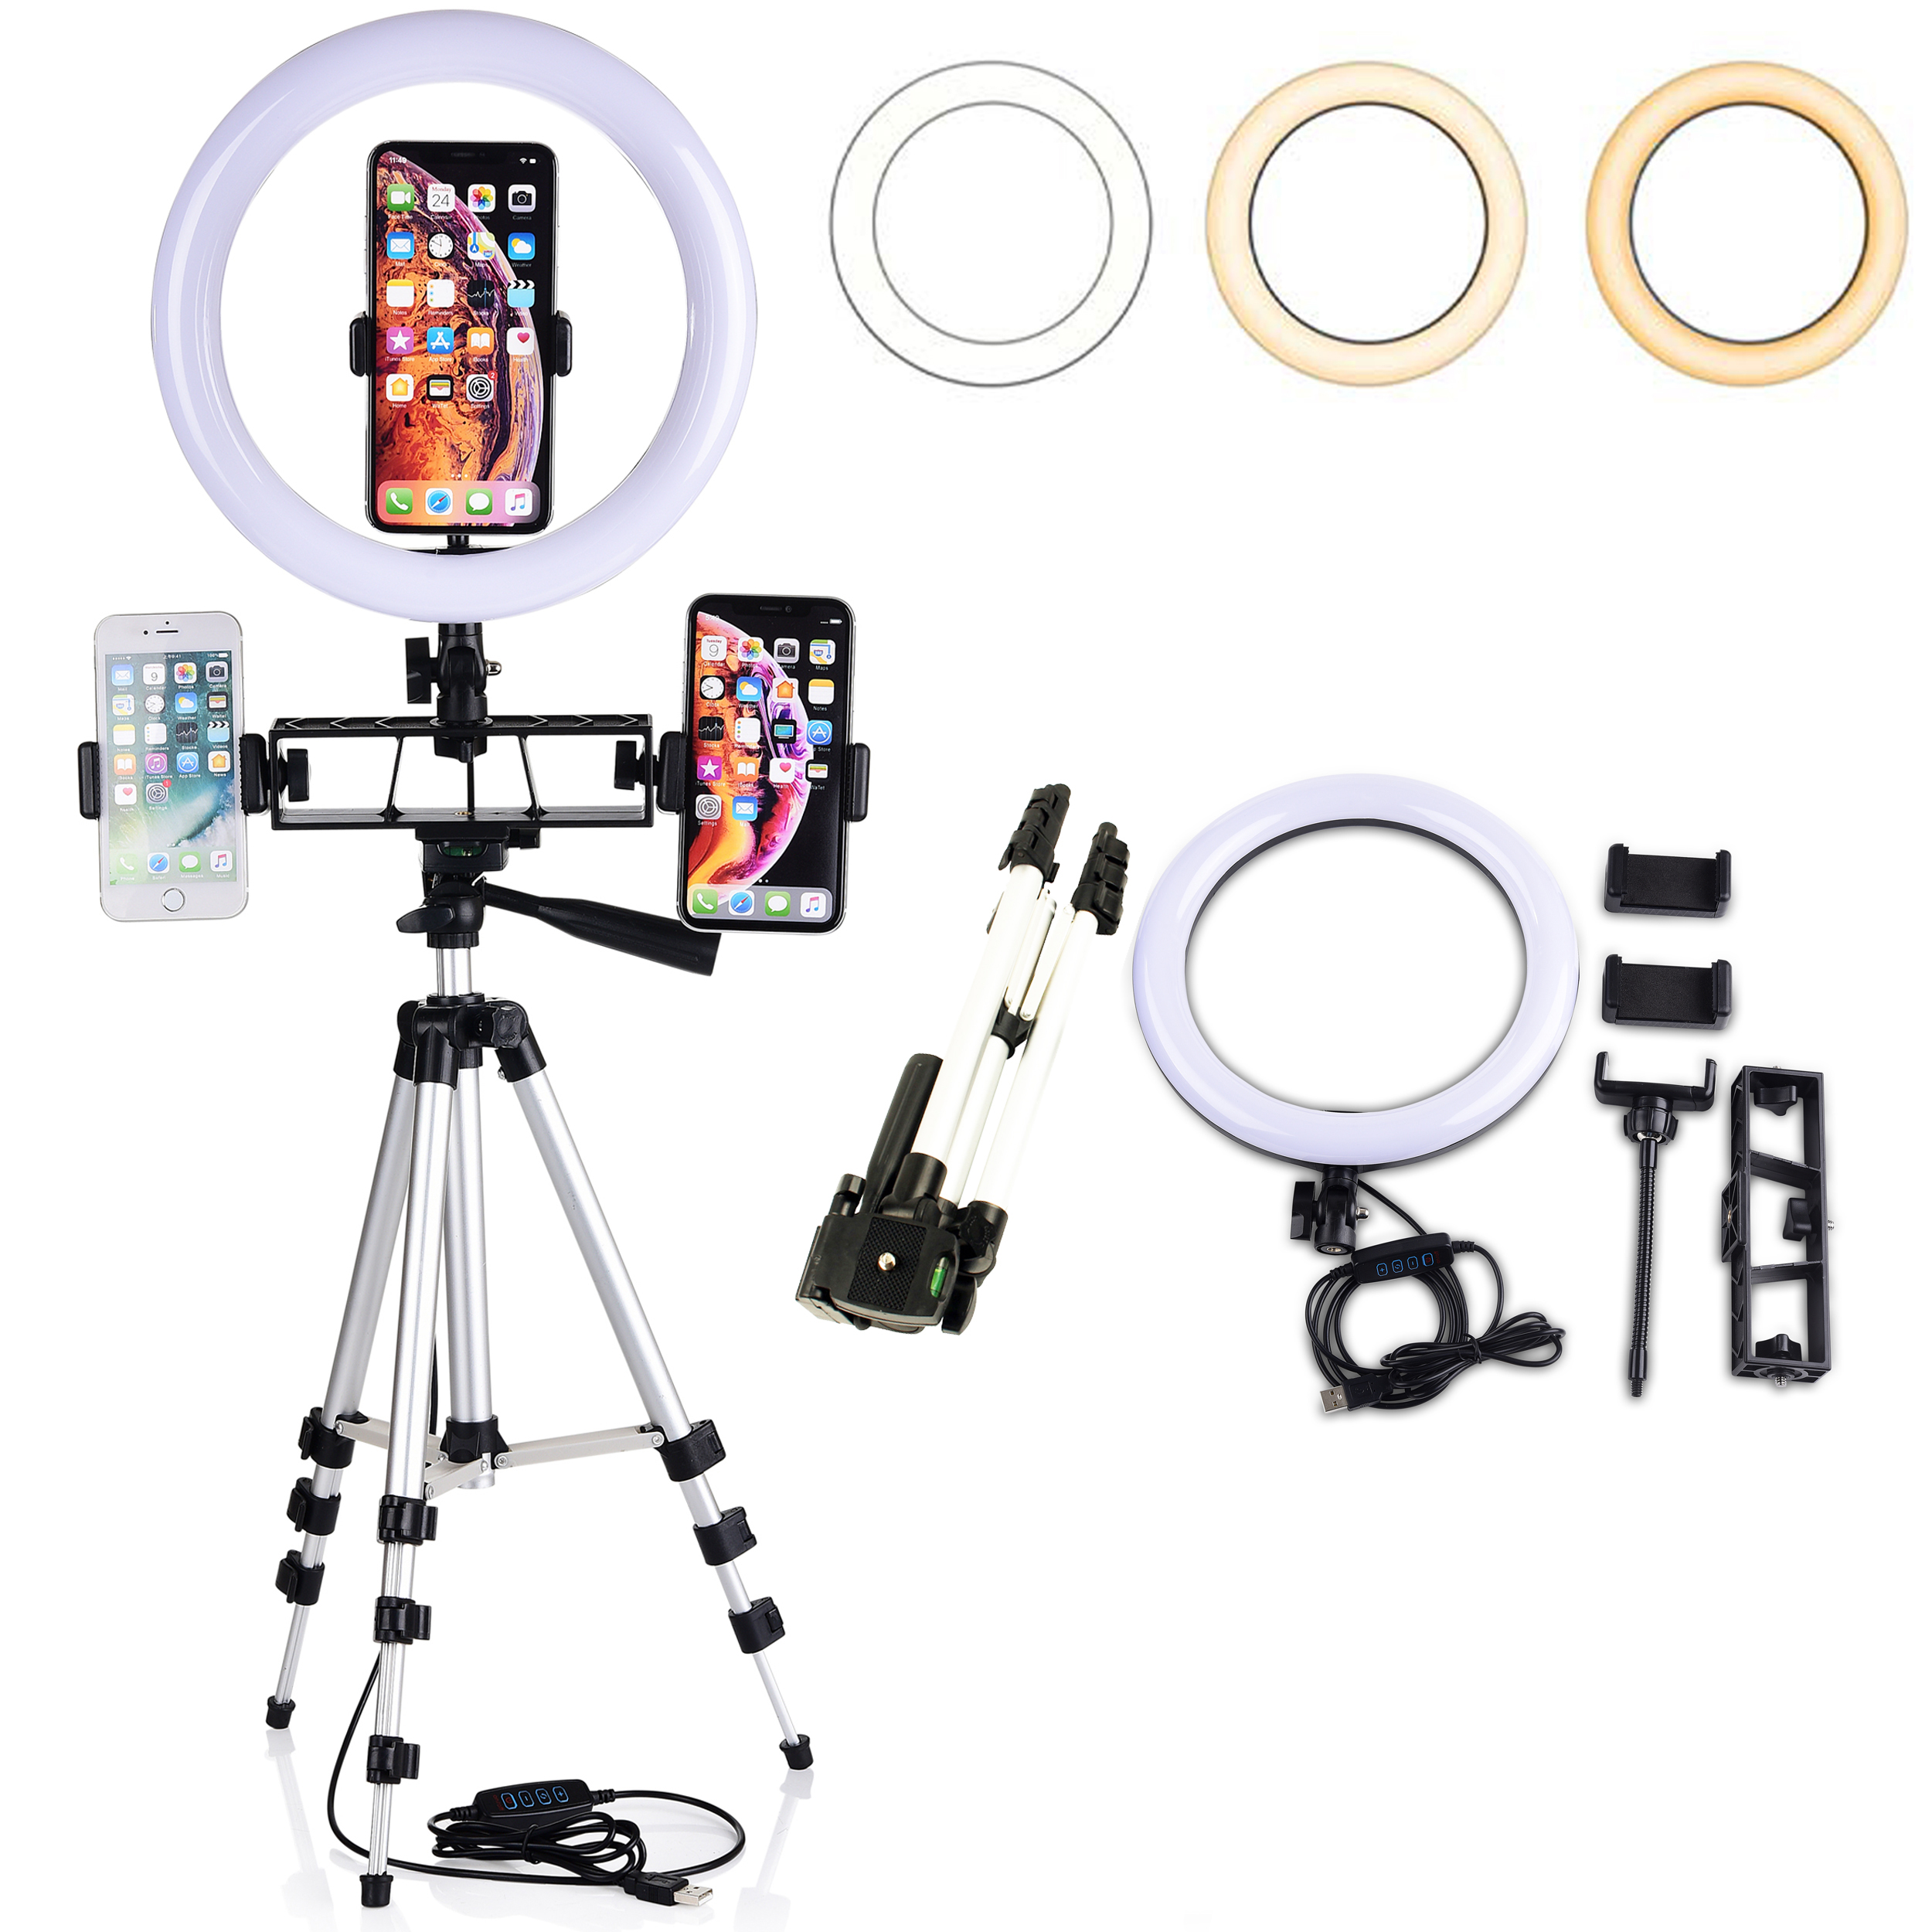 Selfie Light Ring 6.3-inch with Stand /& Phone Holder,3 Light Settings Dimmable Desk LED Camera Lights for Video,Makeup,YouTube,Live Streaming